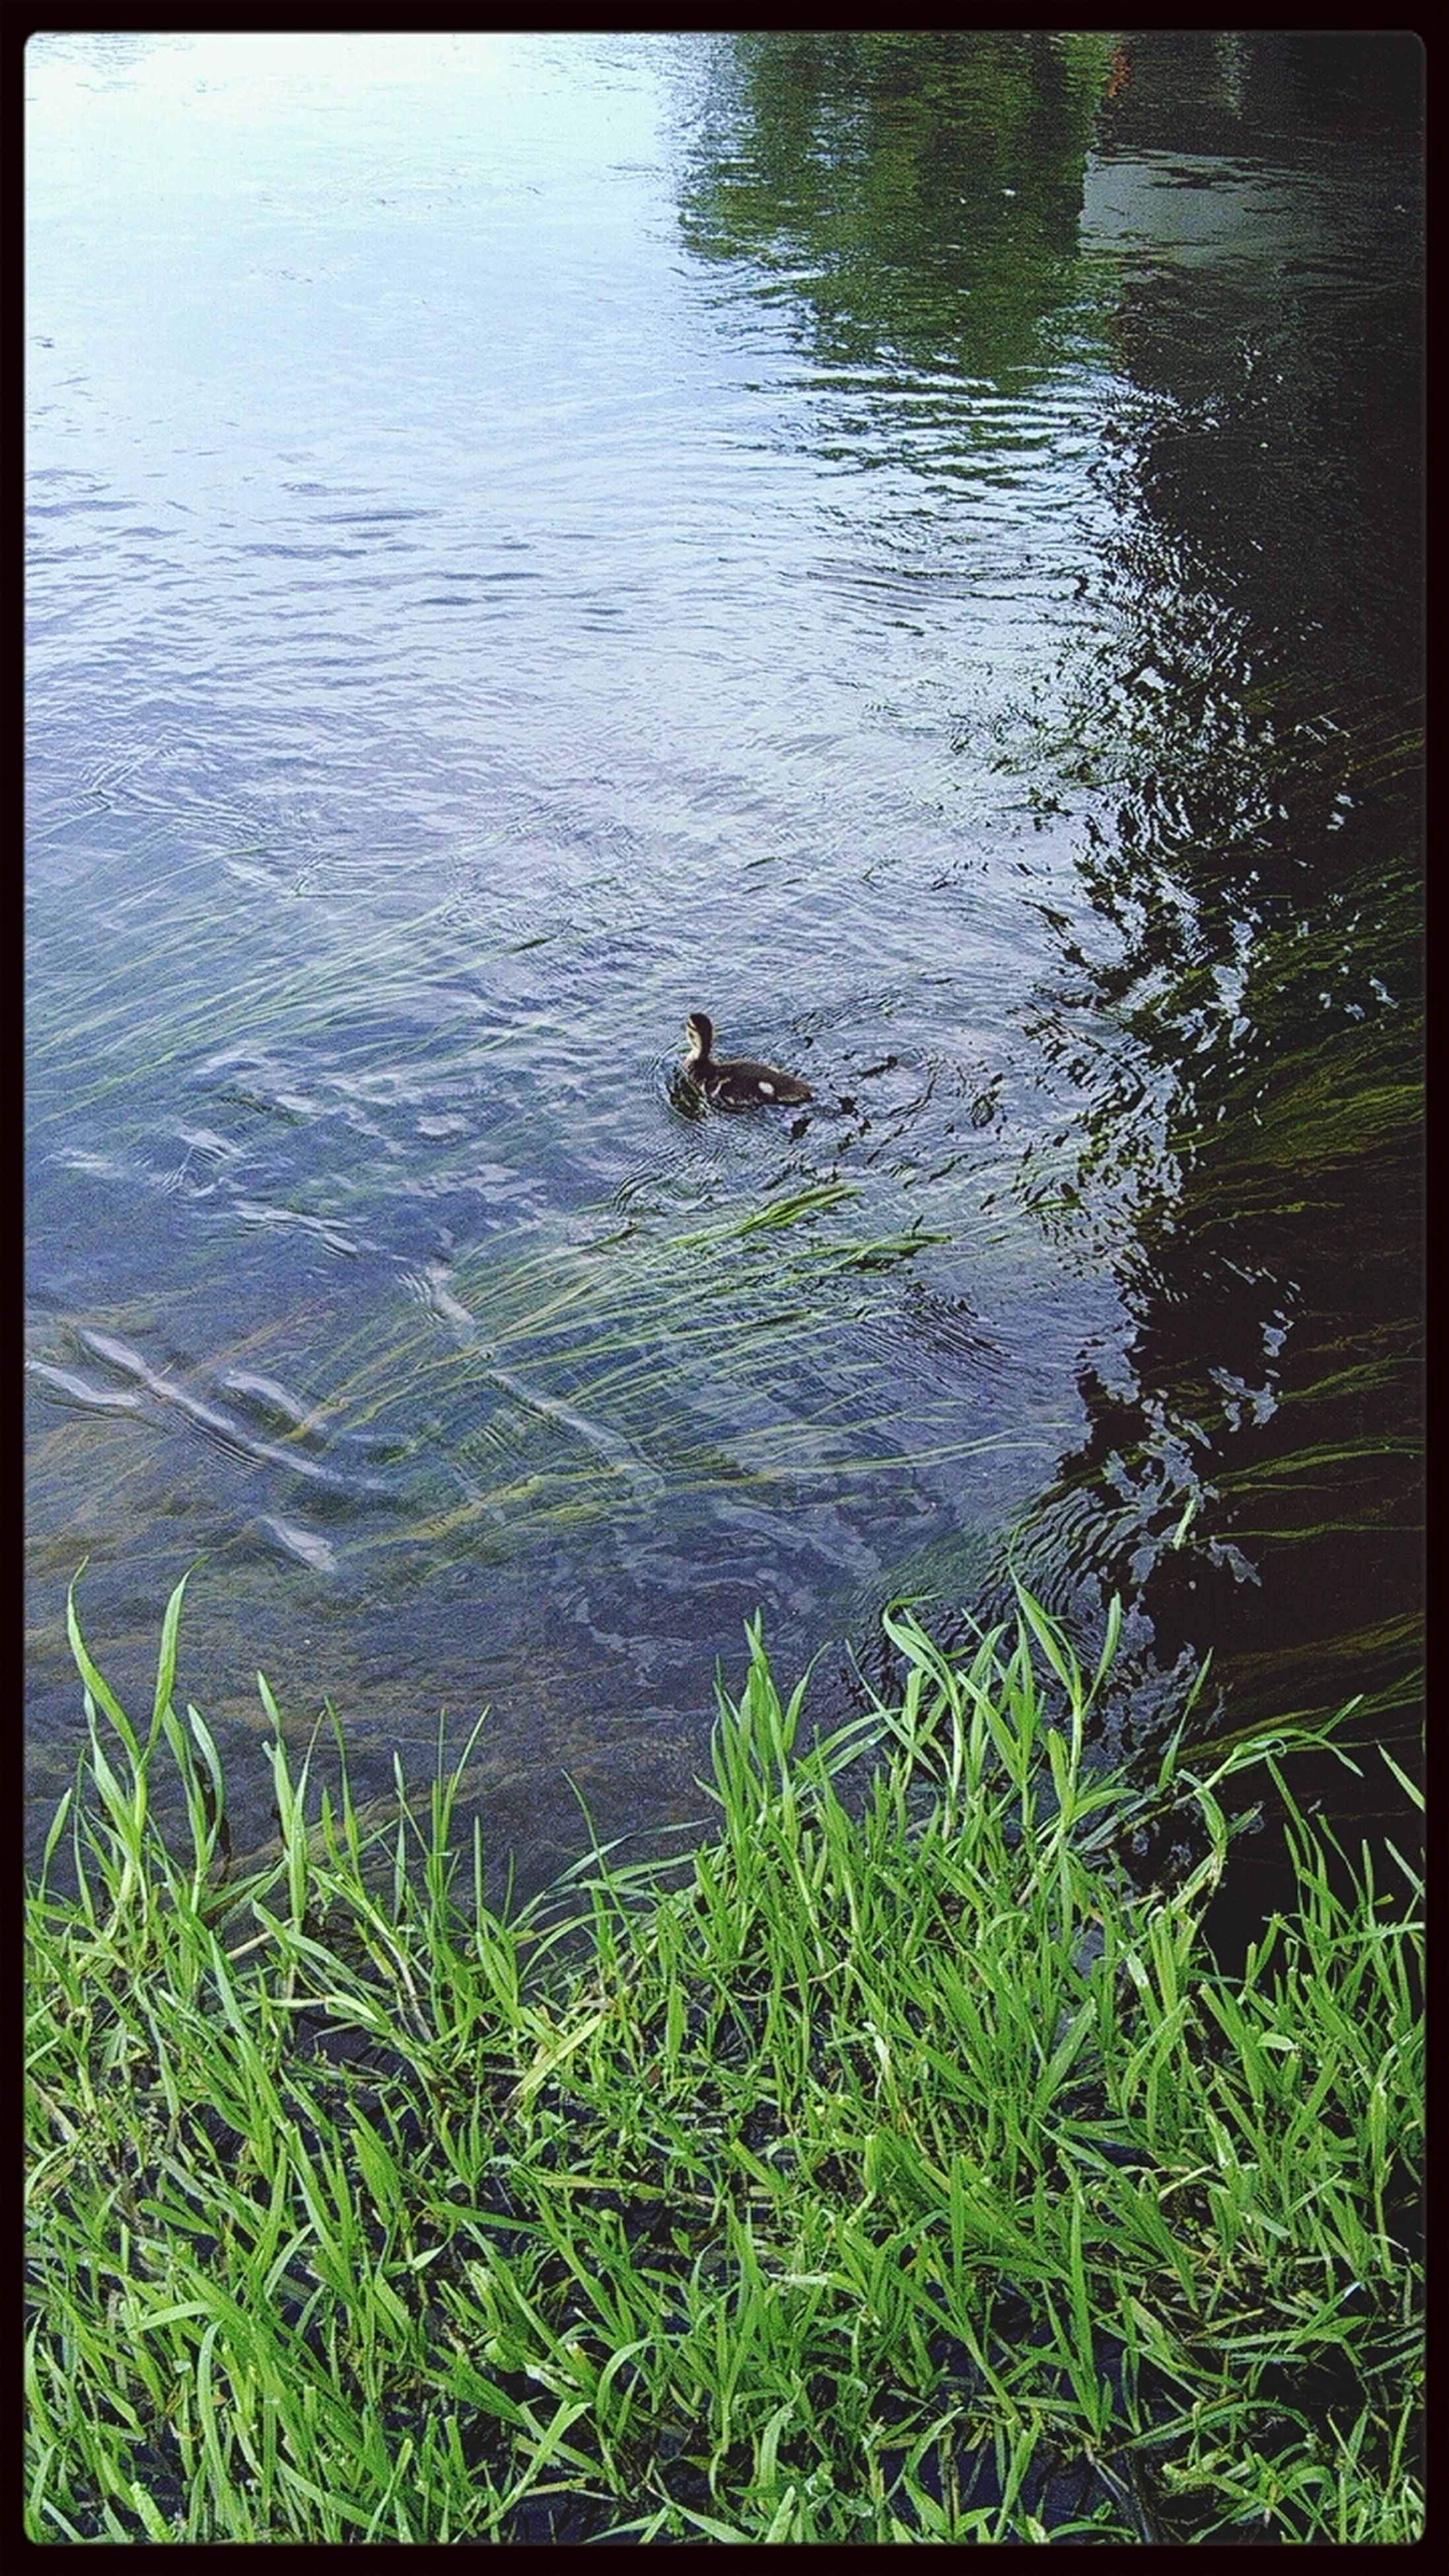 animal themes, water, animals in the wild, lake, wildlife, one animal, bird, grass, swimming, duck, transfer print, reflection, high angle view, nature, rippled, tranquility, two animals, auto post production filter, water bird, plant